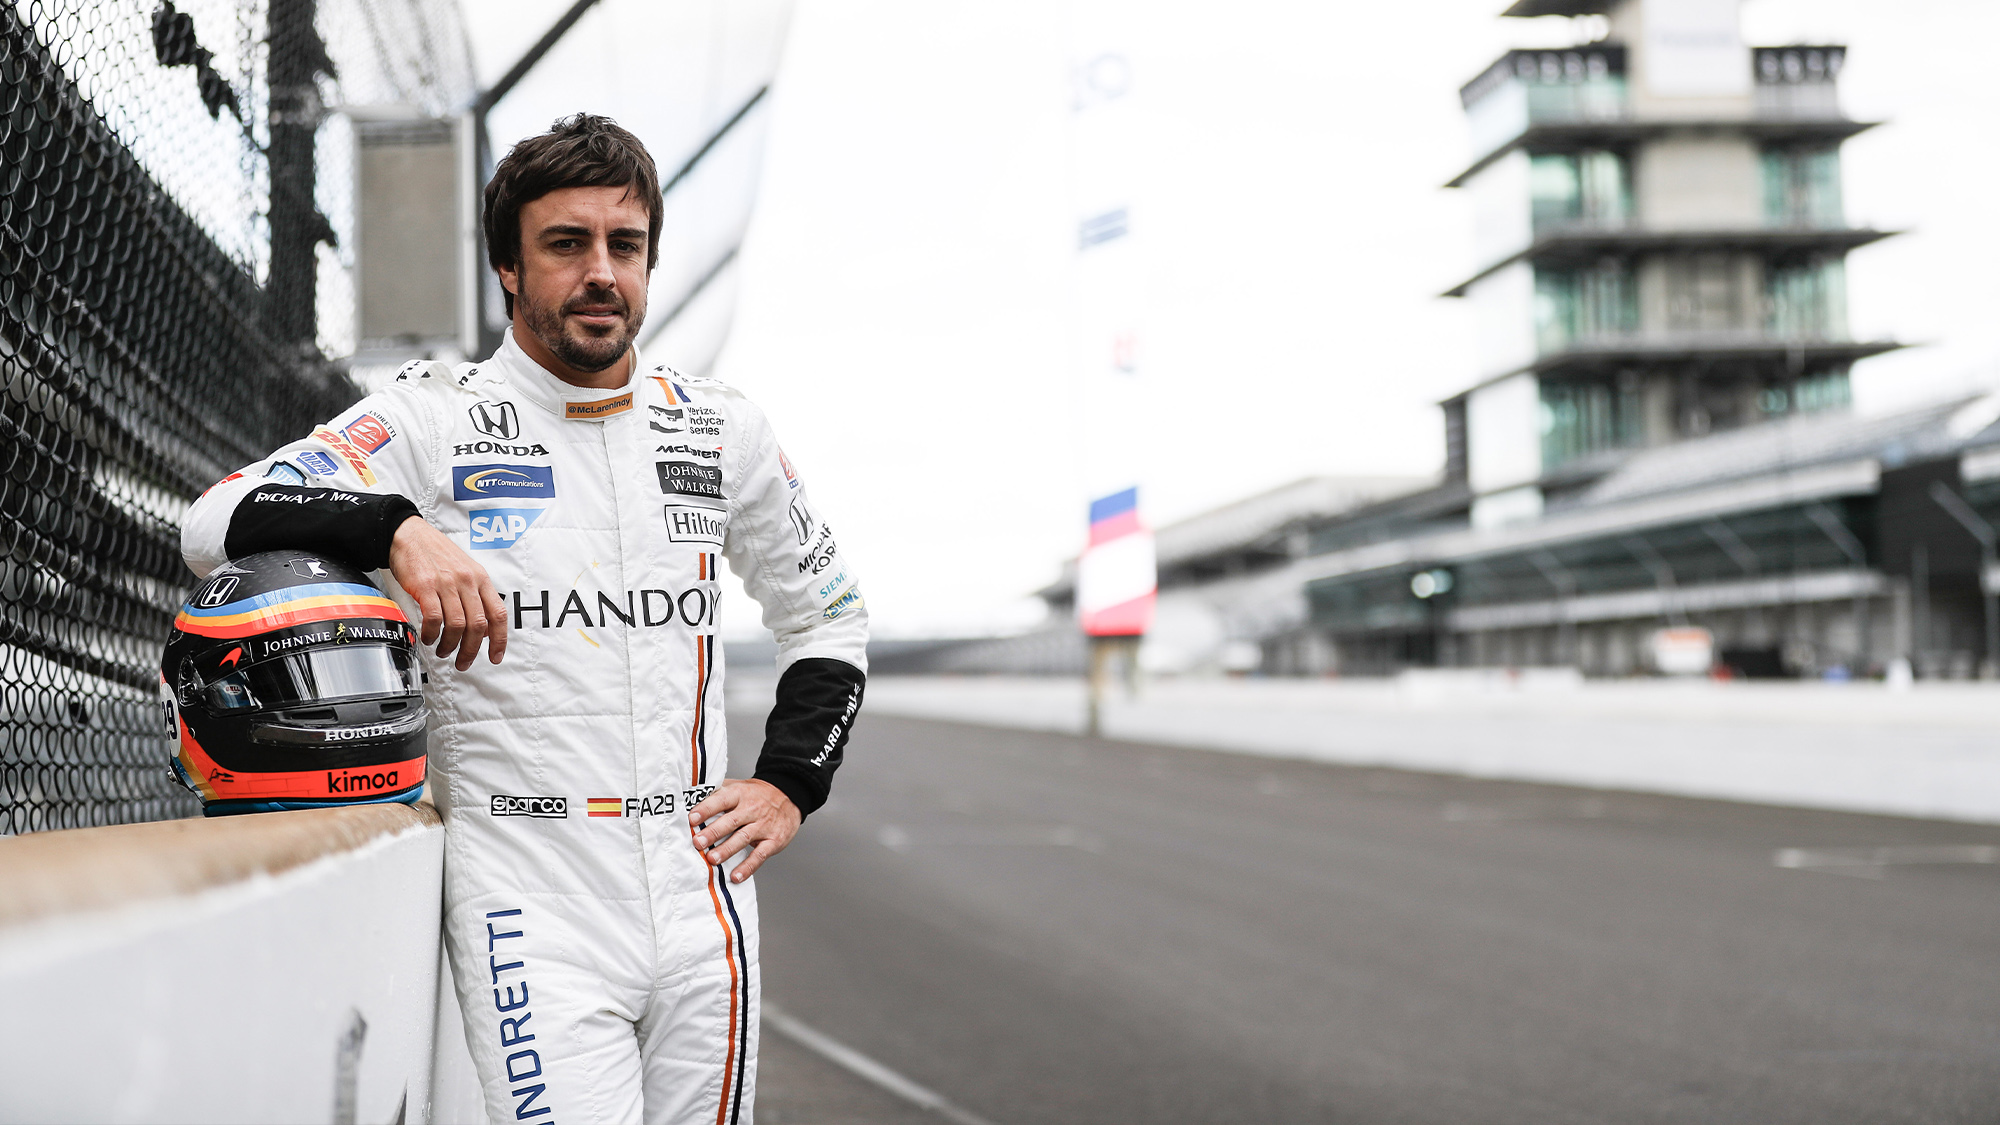 Fernando Alonso at the Indianapolis Motor Speedway ahead of the 2017 Indy 500 with Andretti Autosport